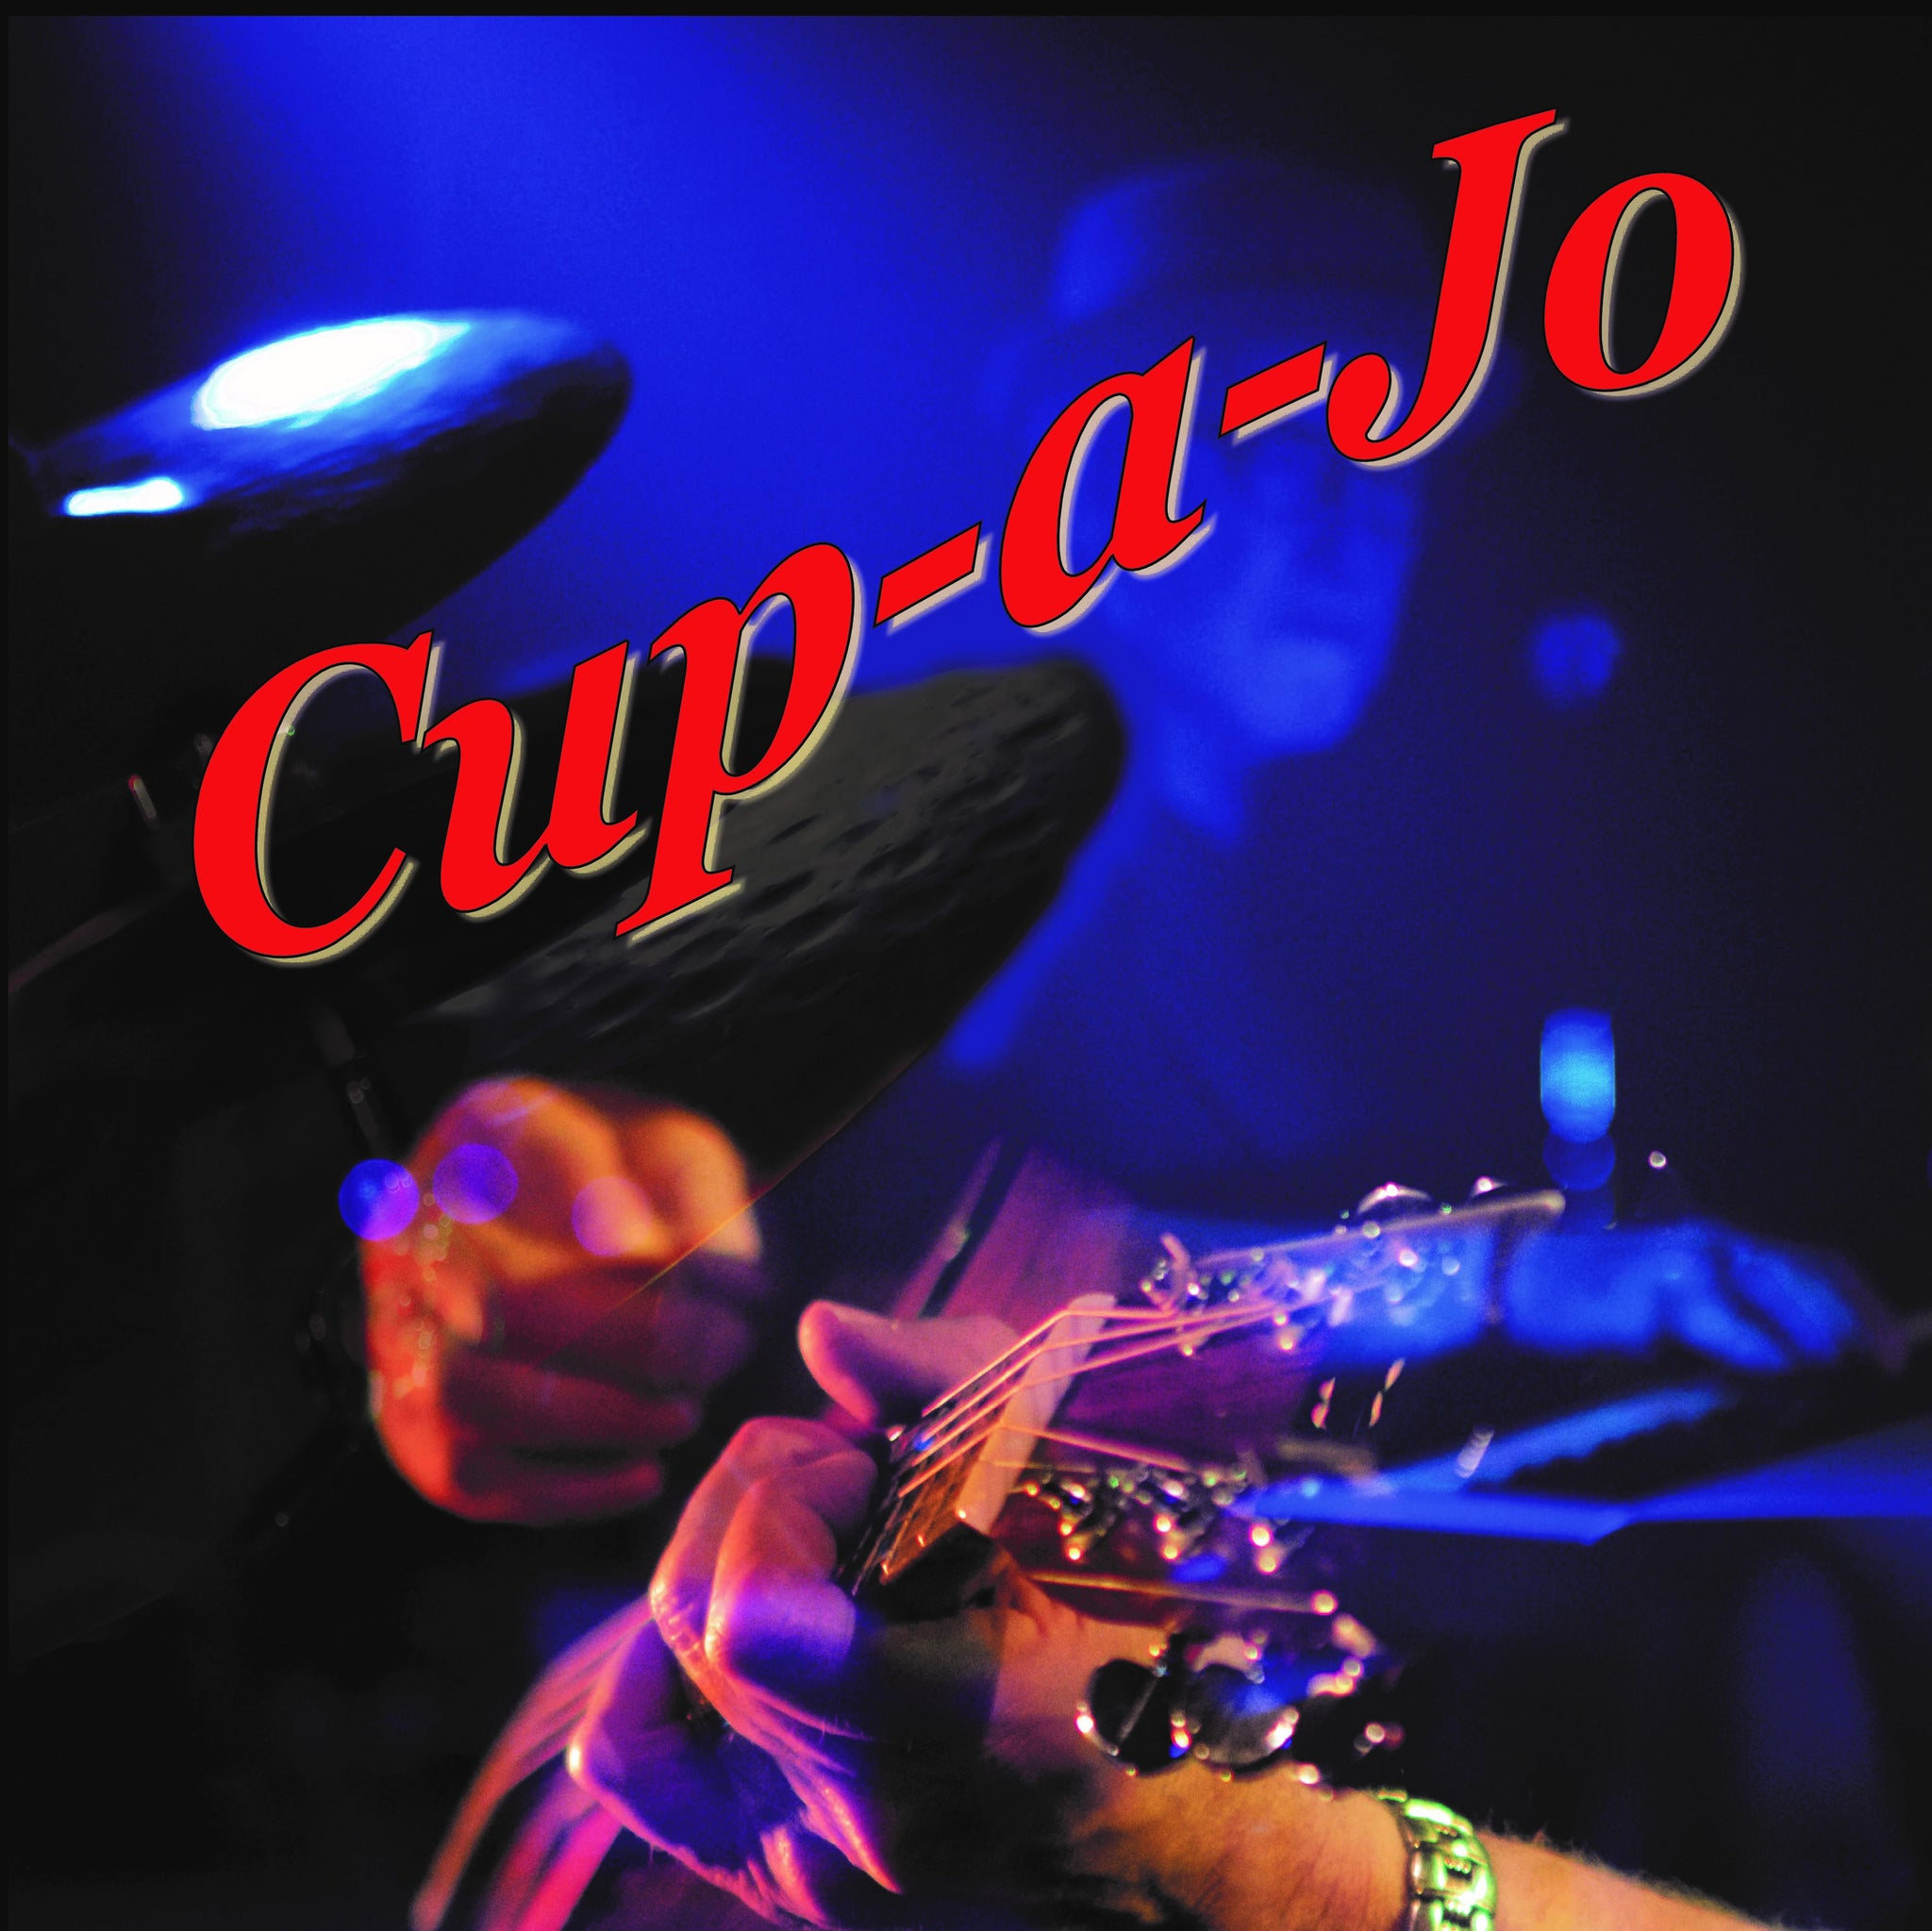 May 19th - Fridays Uncorked featuring Cup-a-Jo